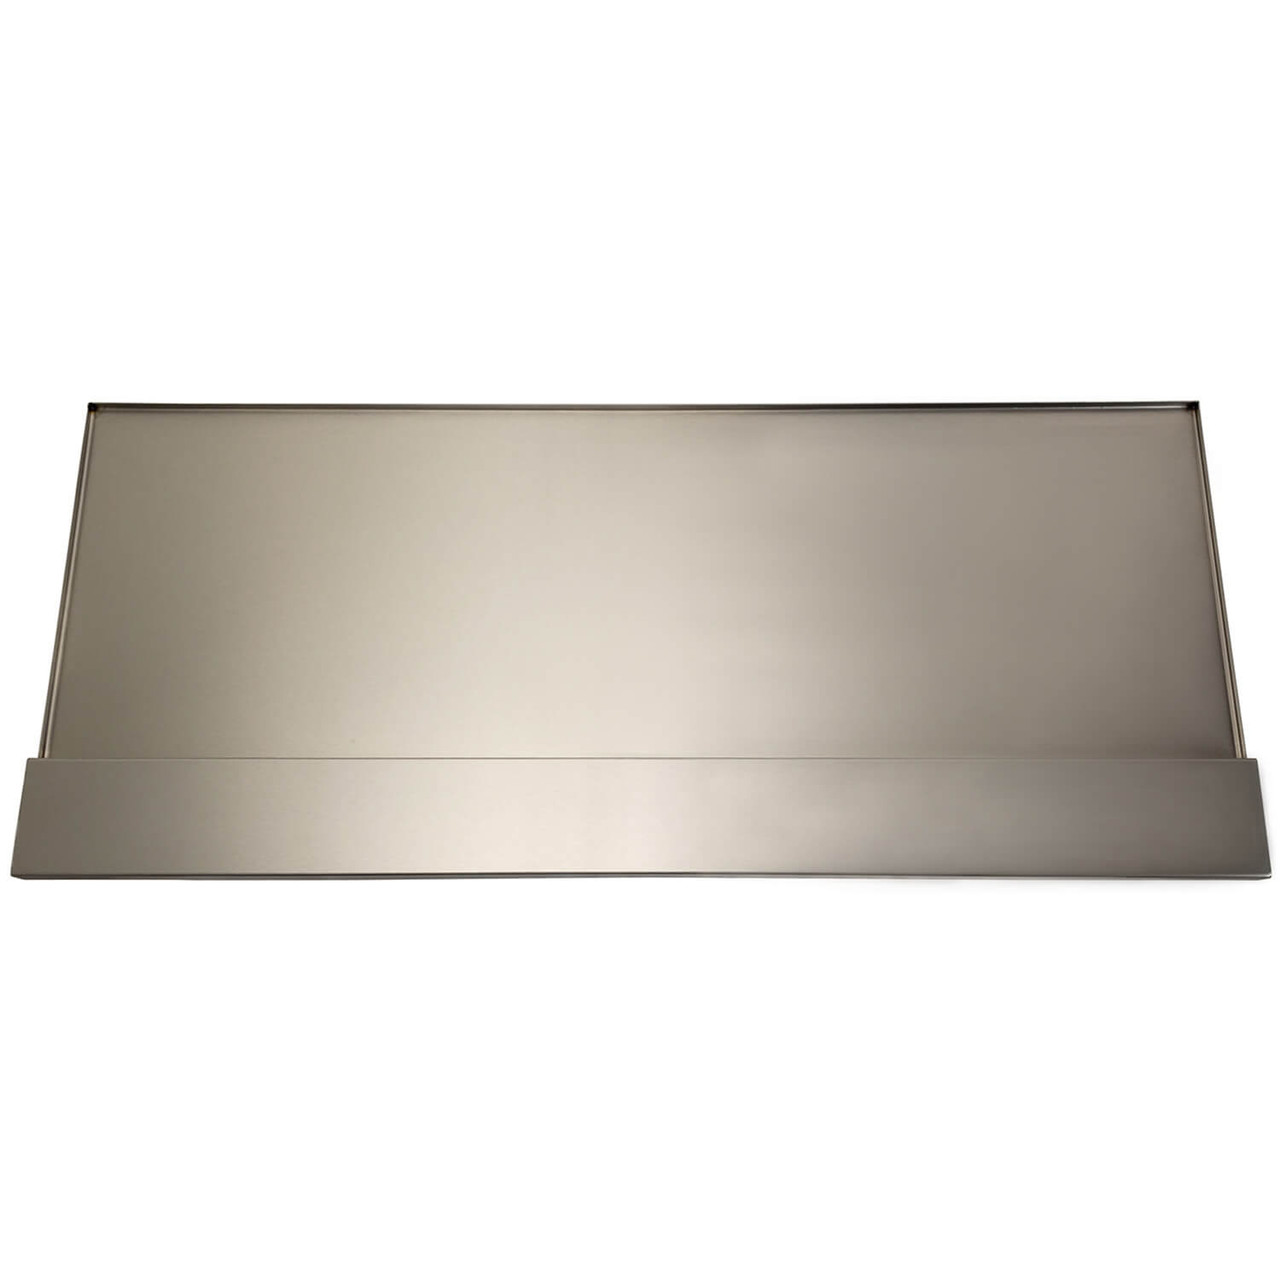 "Drip Tray for 56"" Solaire Grills"